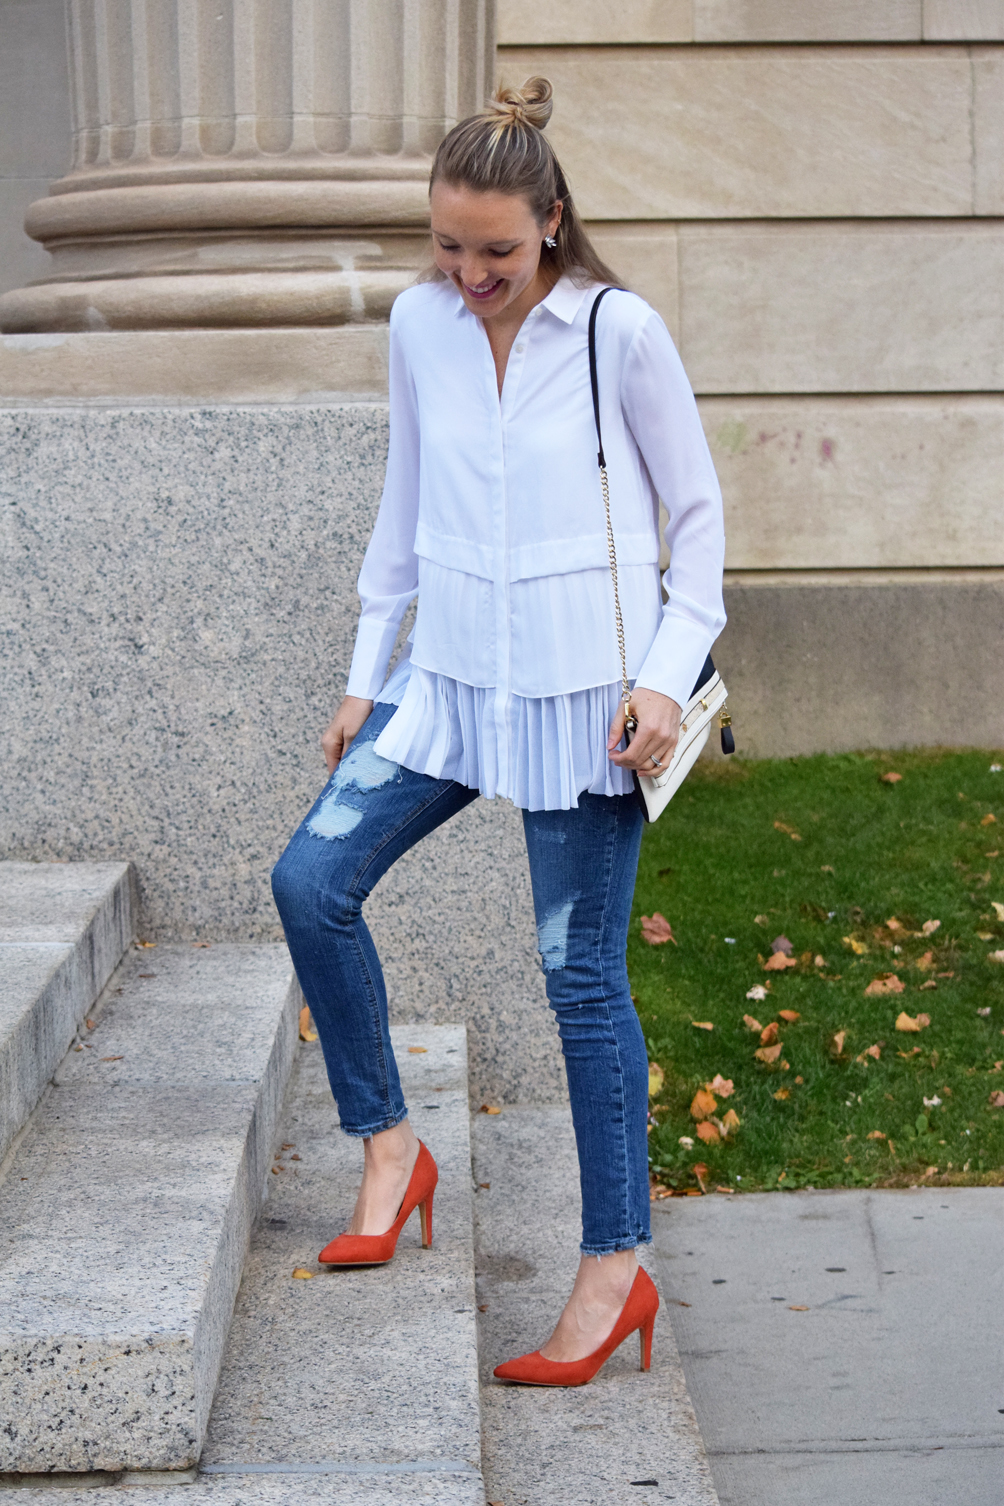 classic and simple outfit ideas for fall